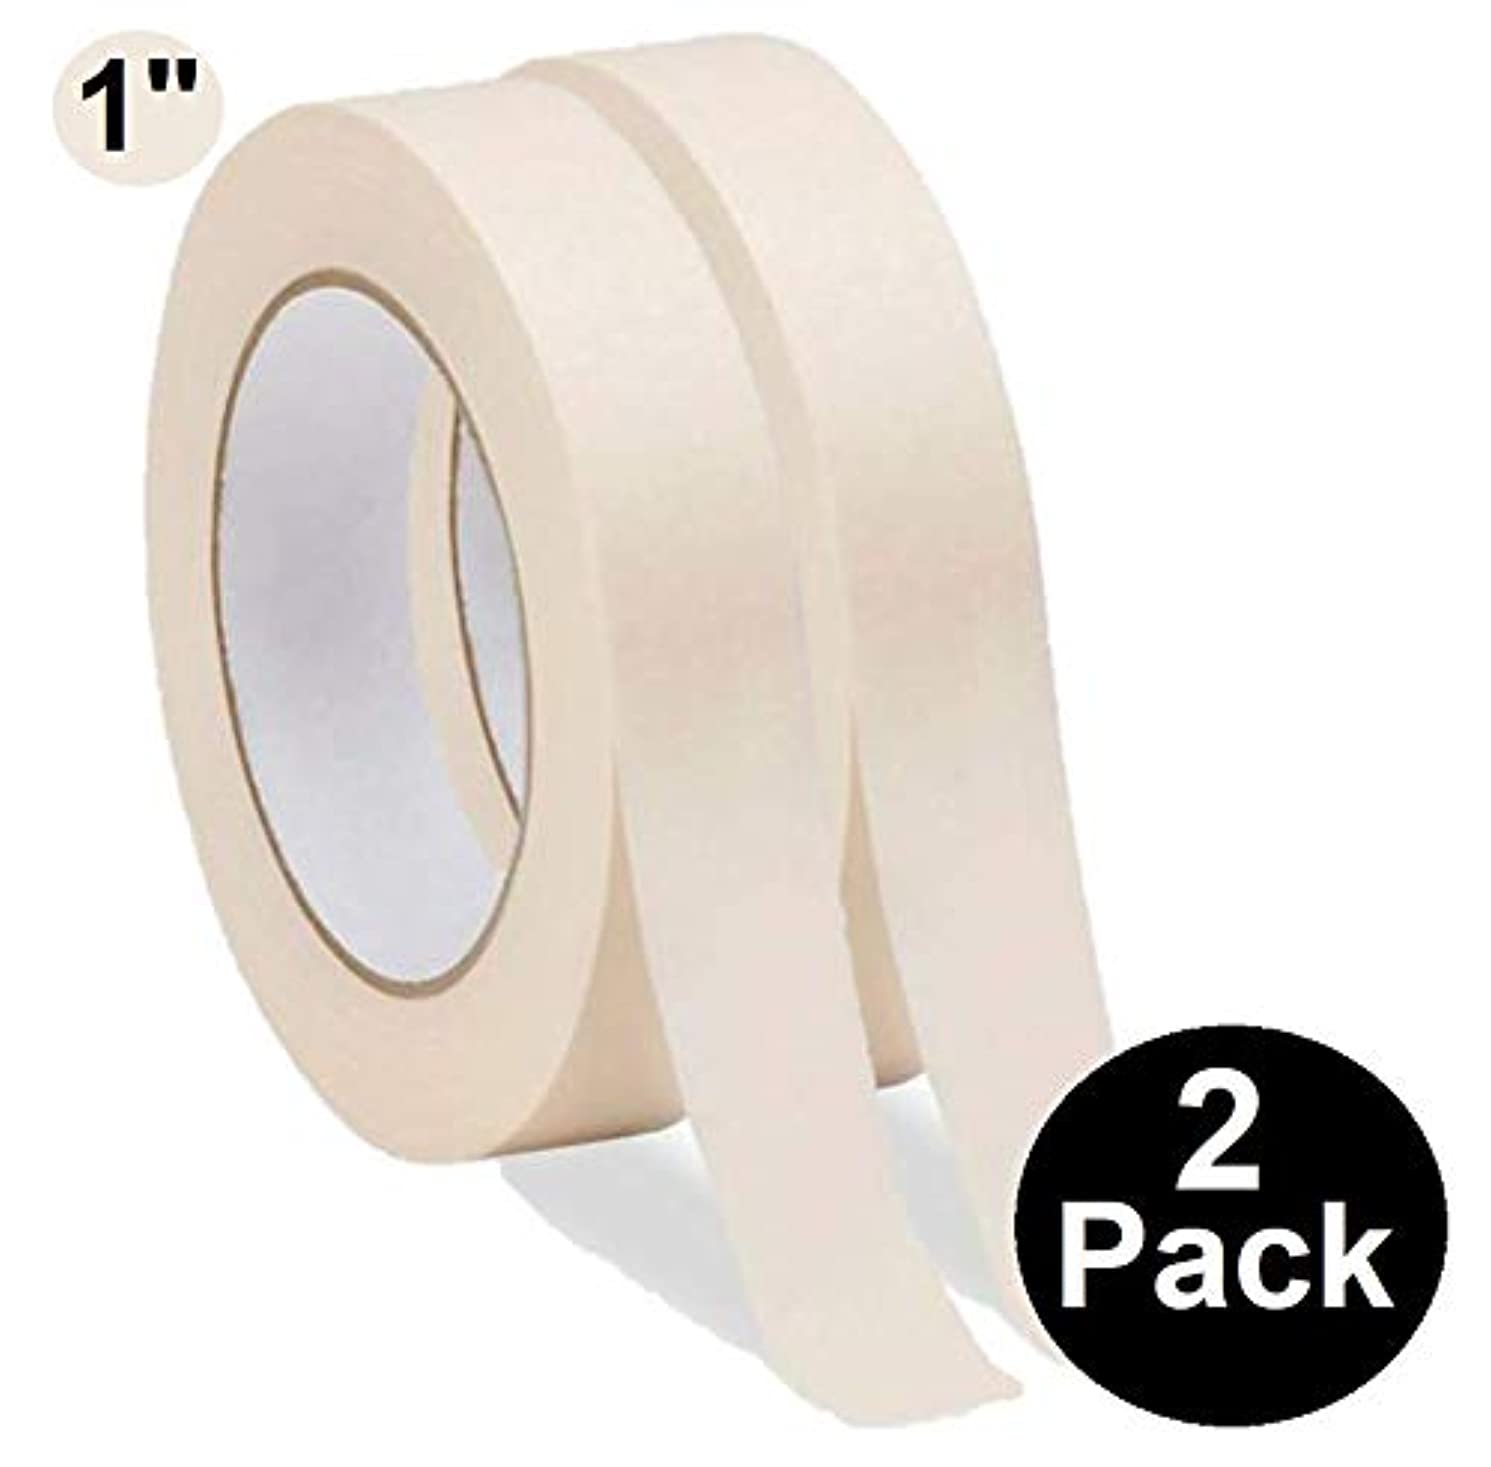 1InTheOffice General Purpose Masking Tape,0.94-Inch by 60.1-Yards, 3